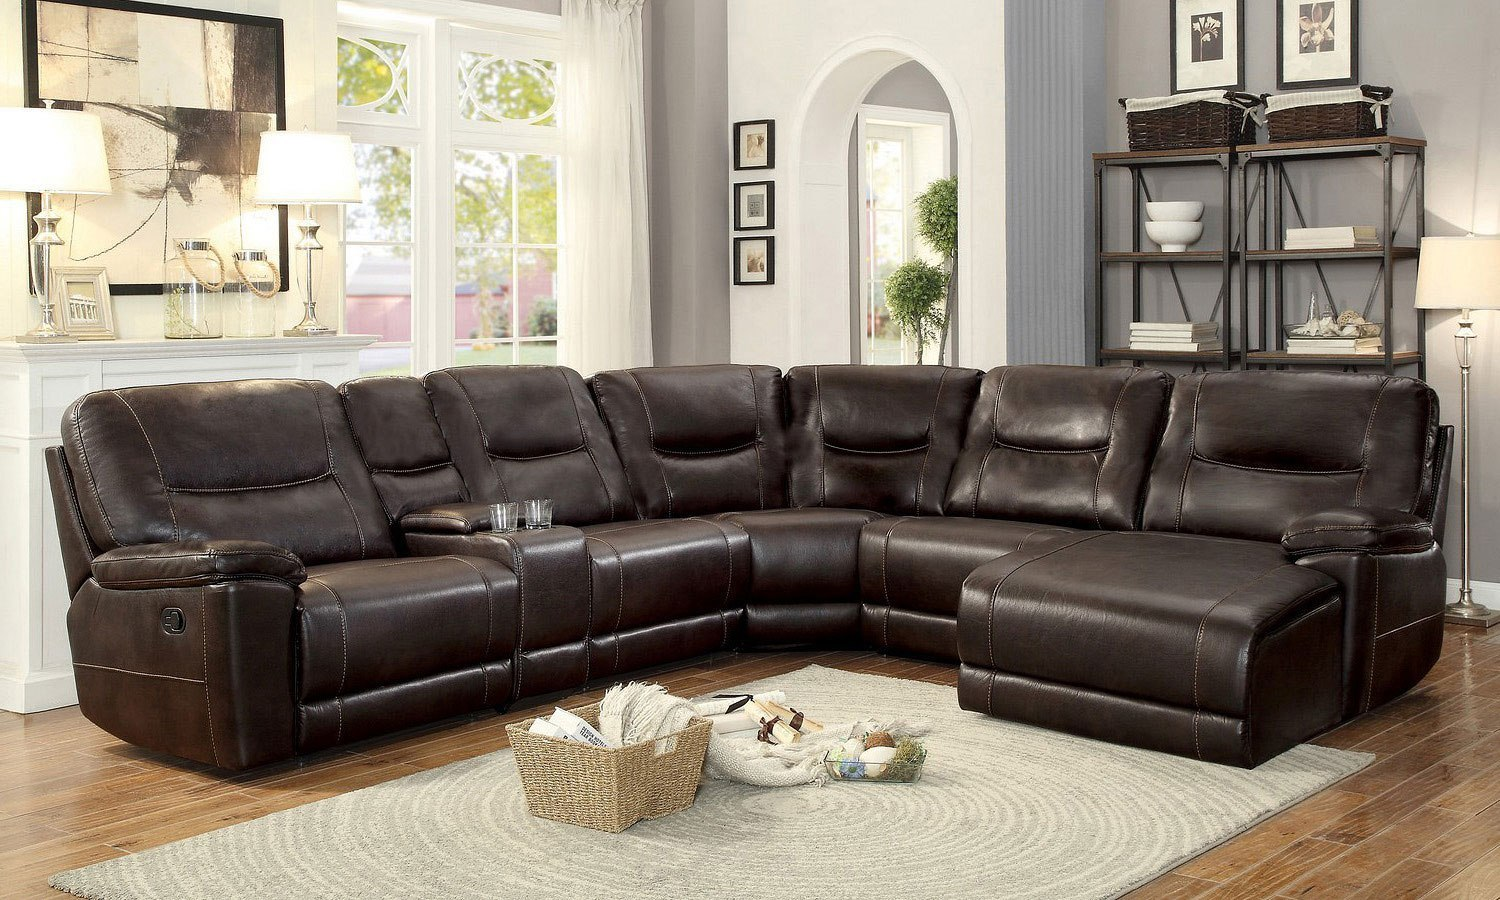 Columbus Modular Reclining Sectional W Chaise Dark Brown By Homelegance Furniturepick